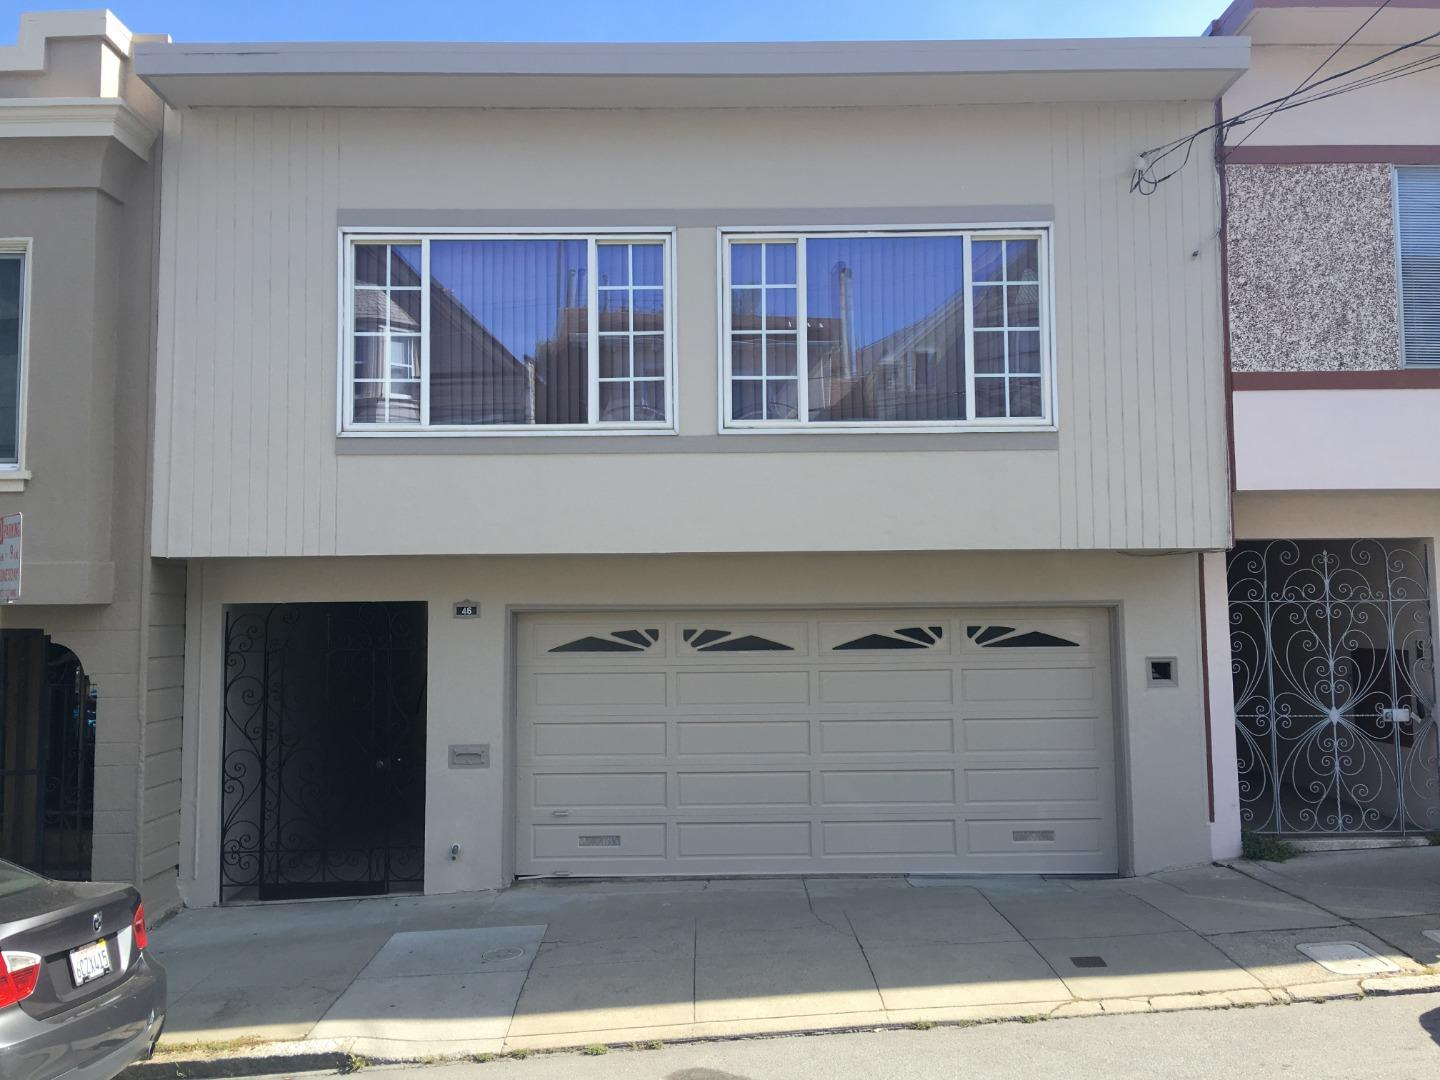 Image for 46 Cotter Street, <br>San Francisco 94112